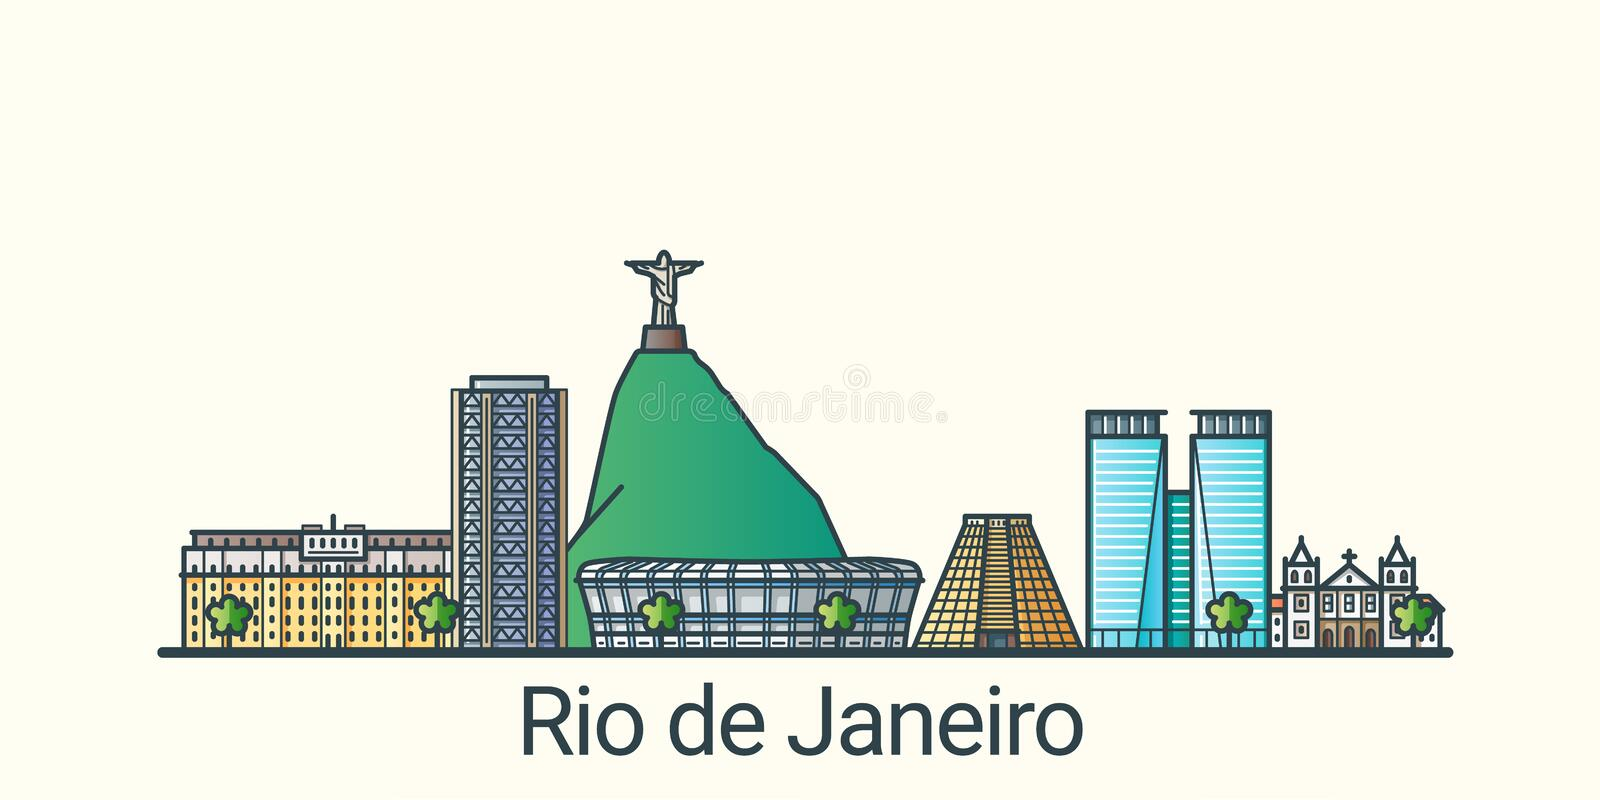 Flat line Rio de Janeiro banner. Banner of Rio de Janeiro city in flat line trendy style. Rio de Janeiro city line art. All buildings separated and customizable royalty free illustration